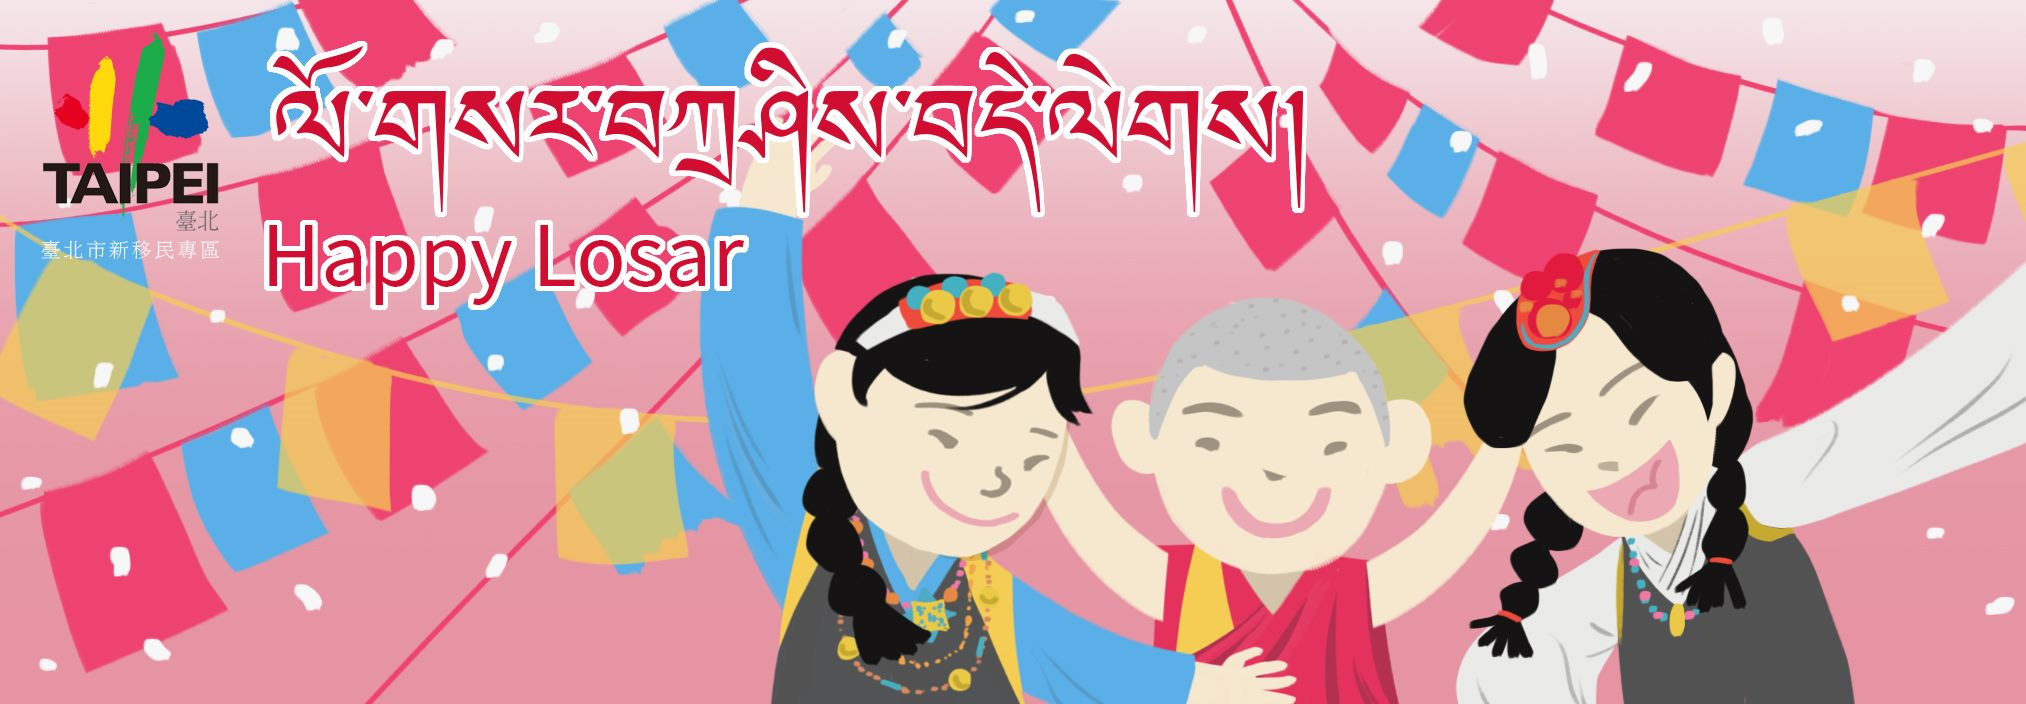 2021-Happy Losar